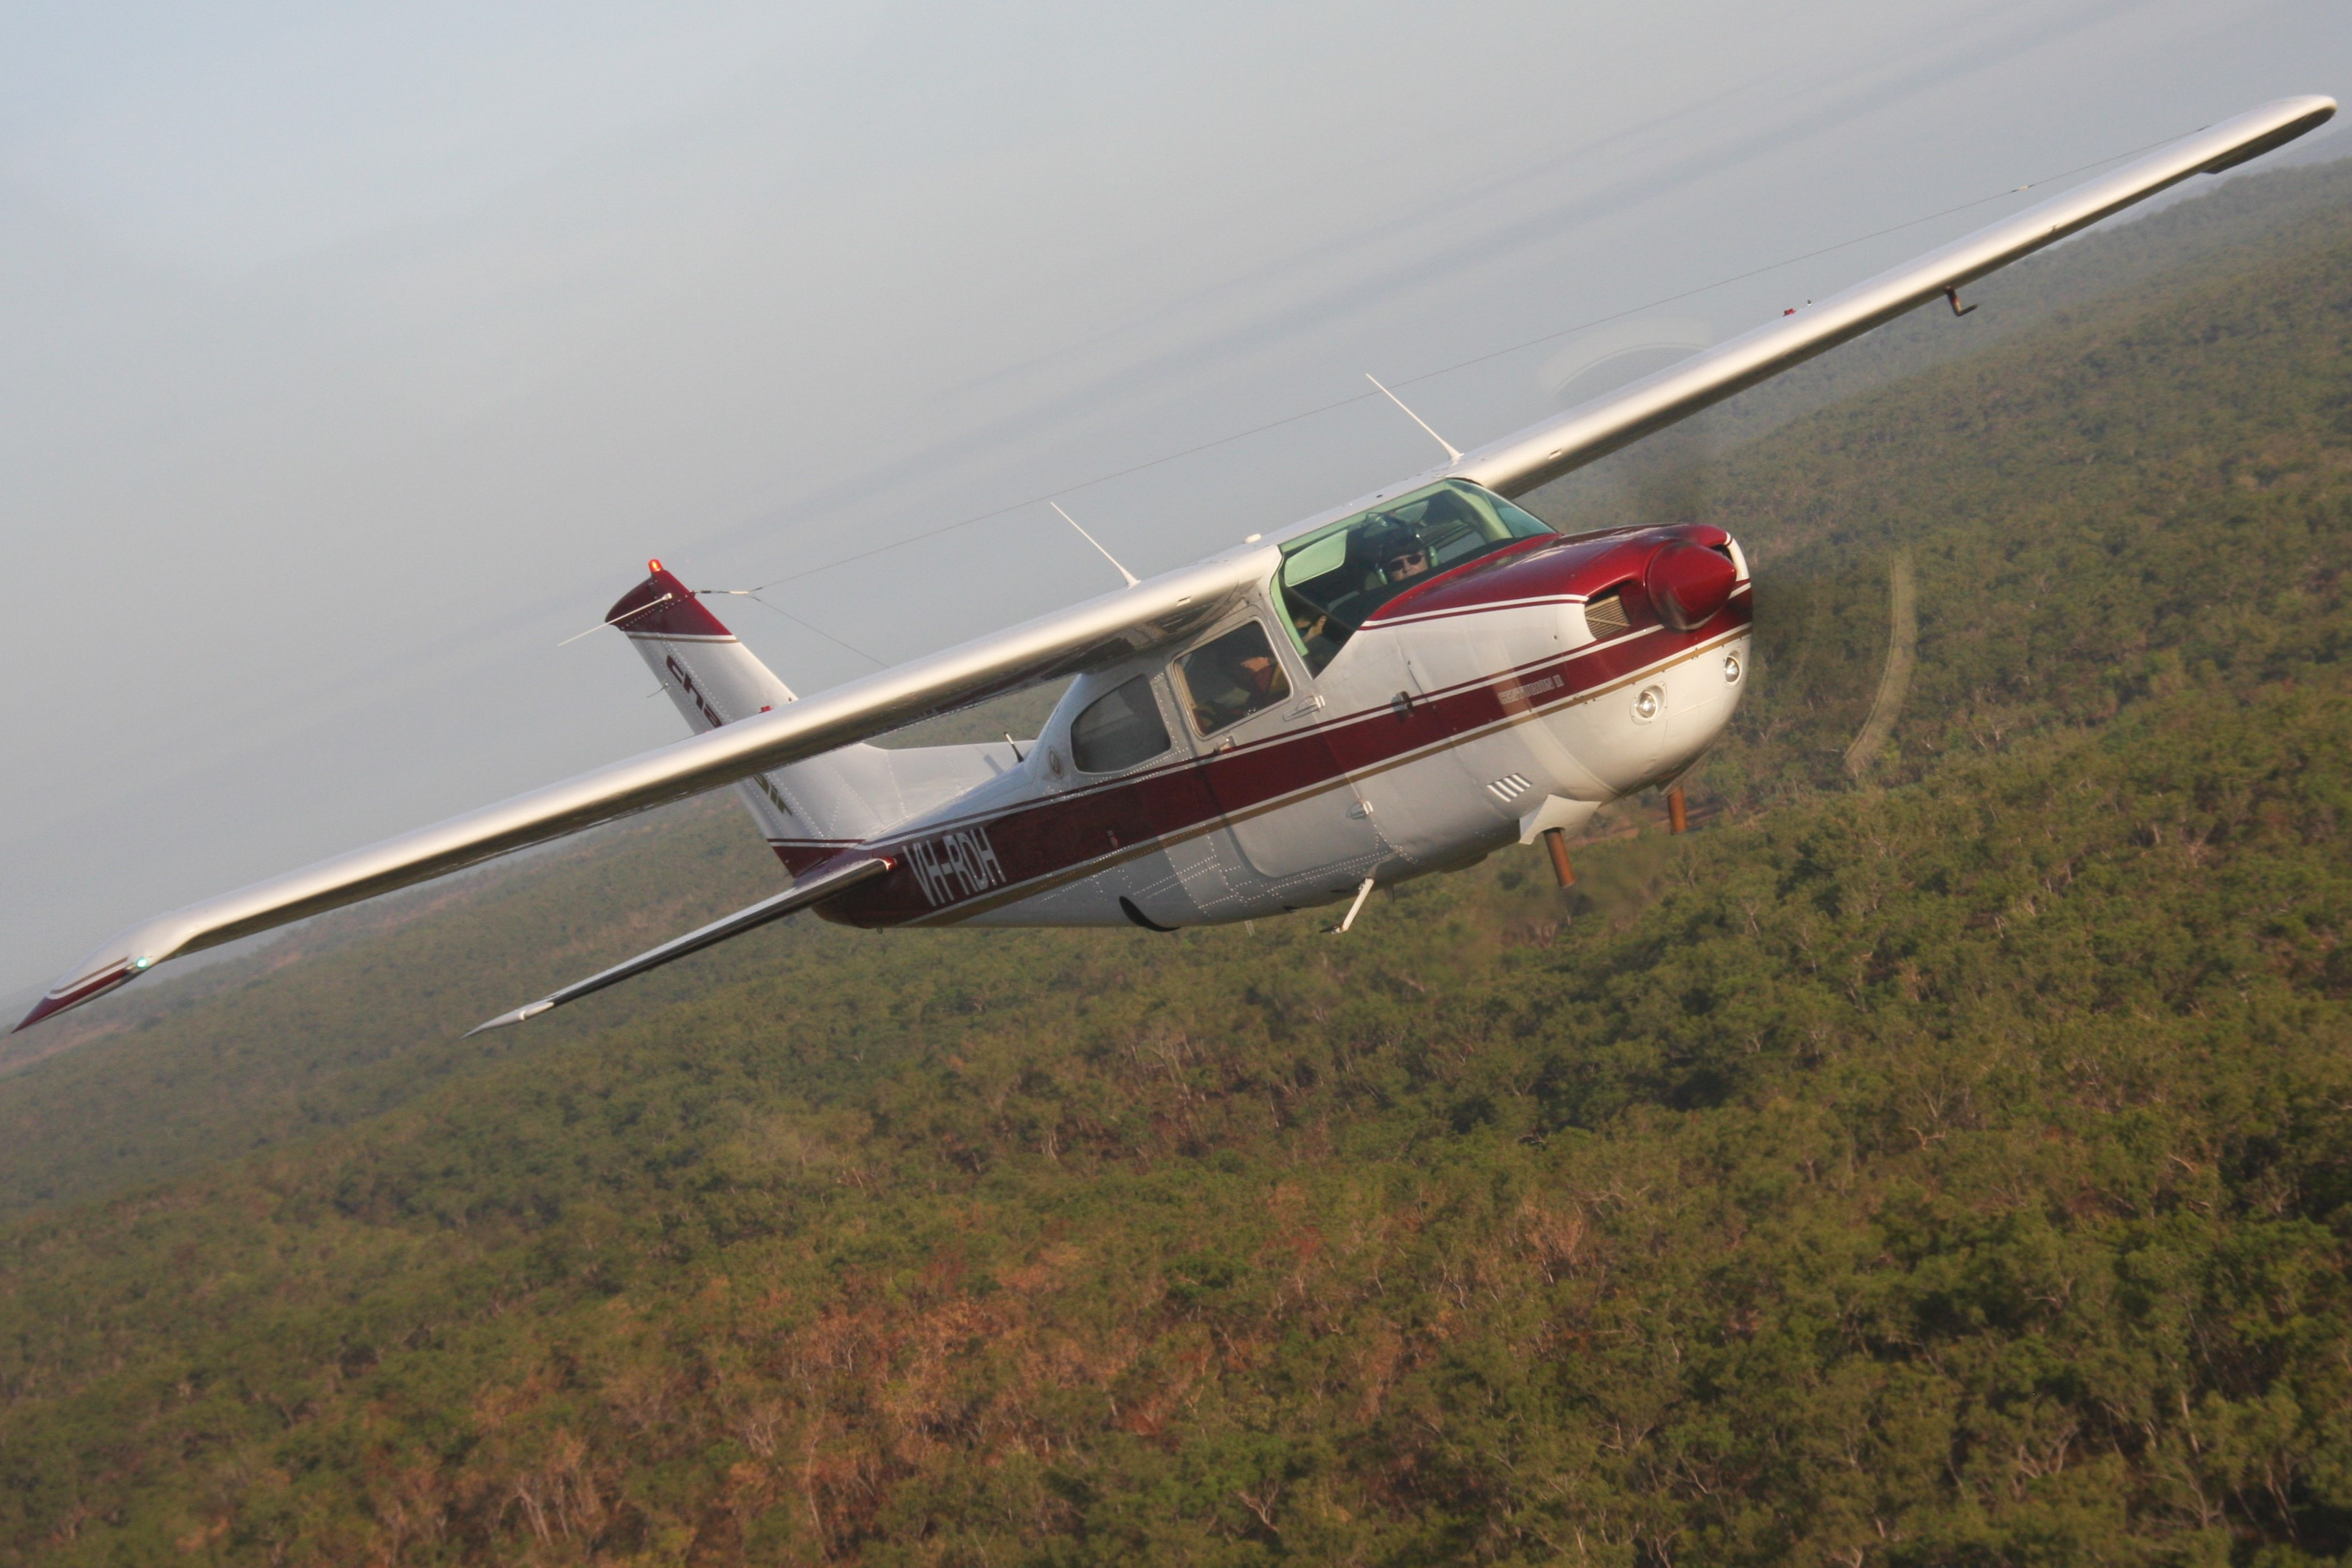 The workhorse of the Top End! A Cessna 210 cuts the horizon on a smokey, dry season day.